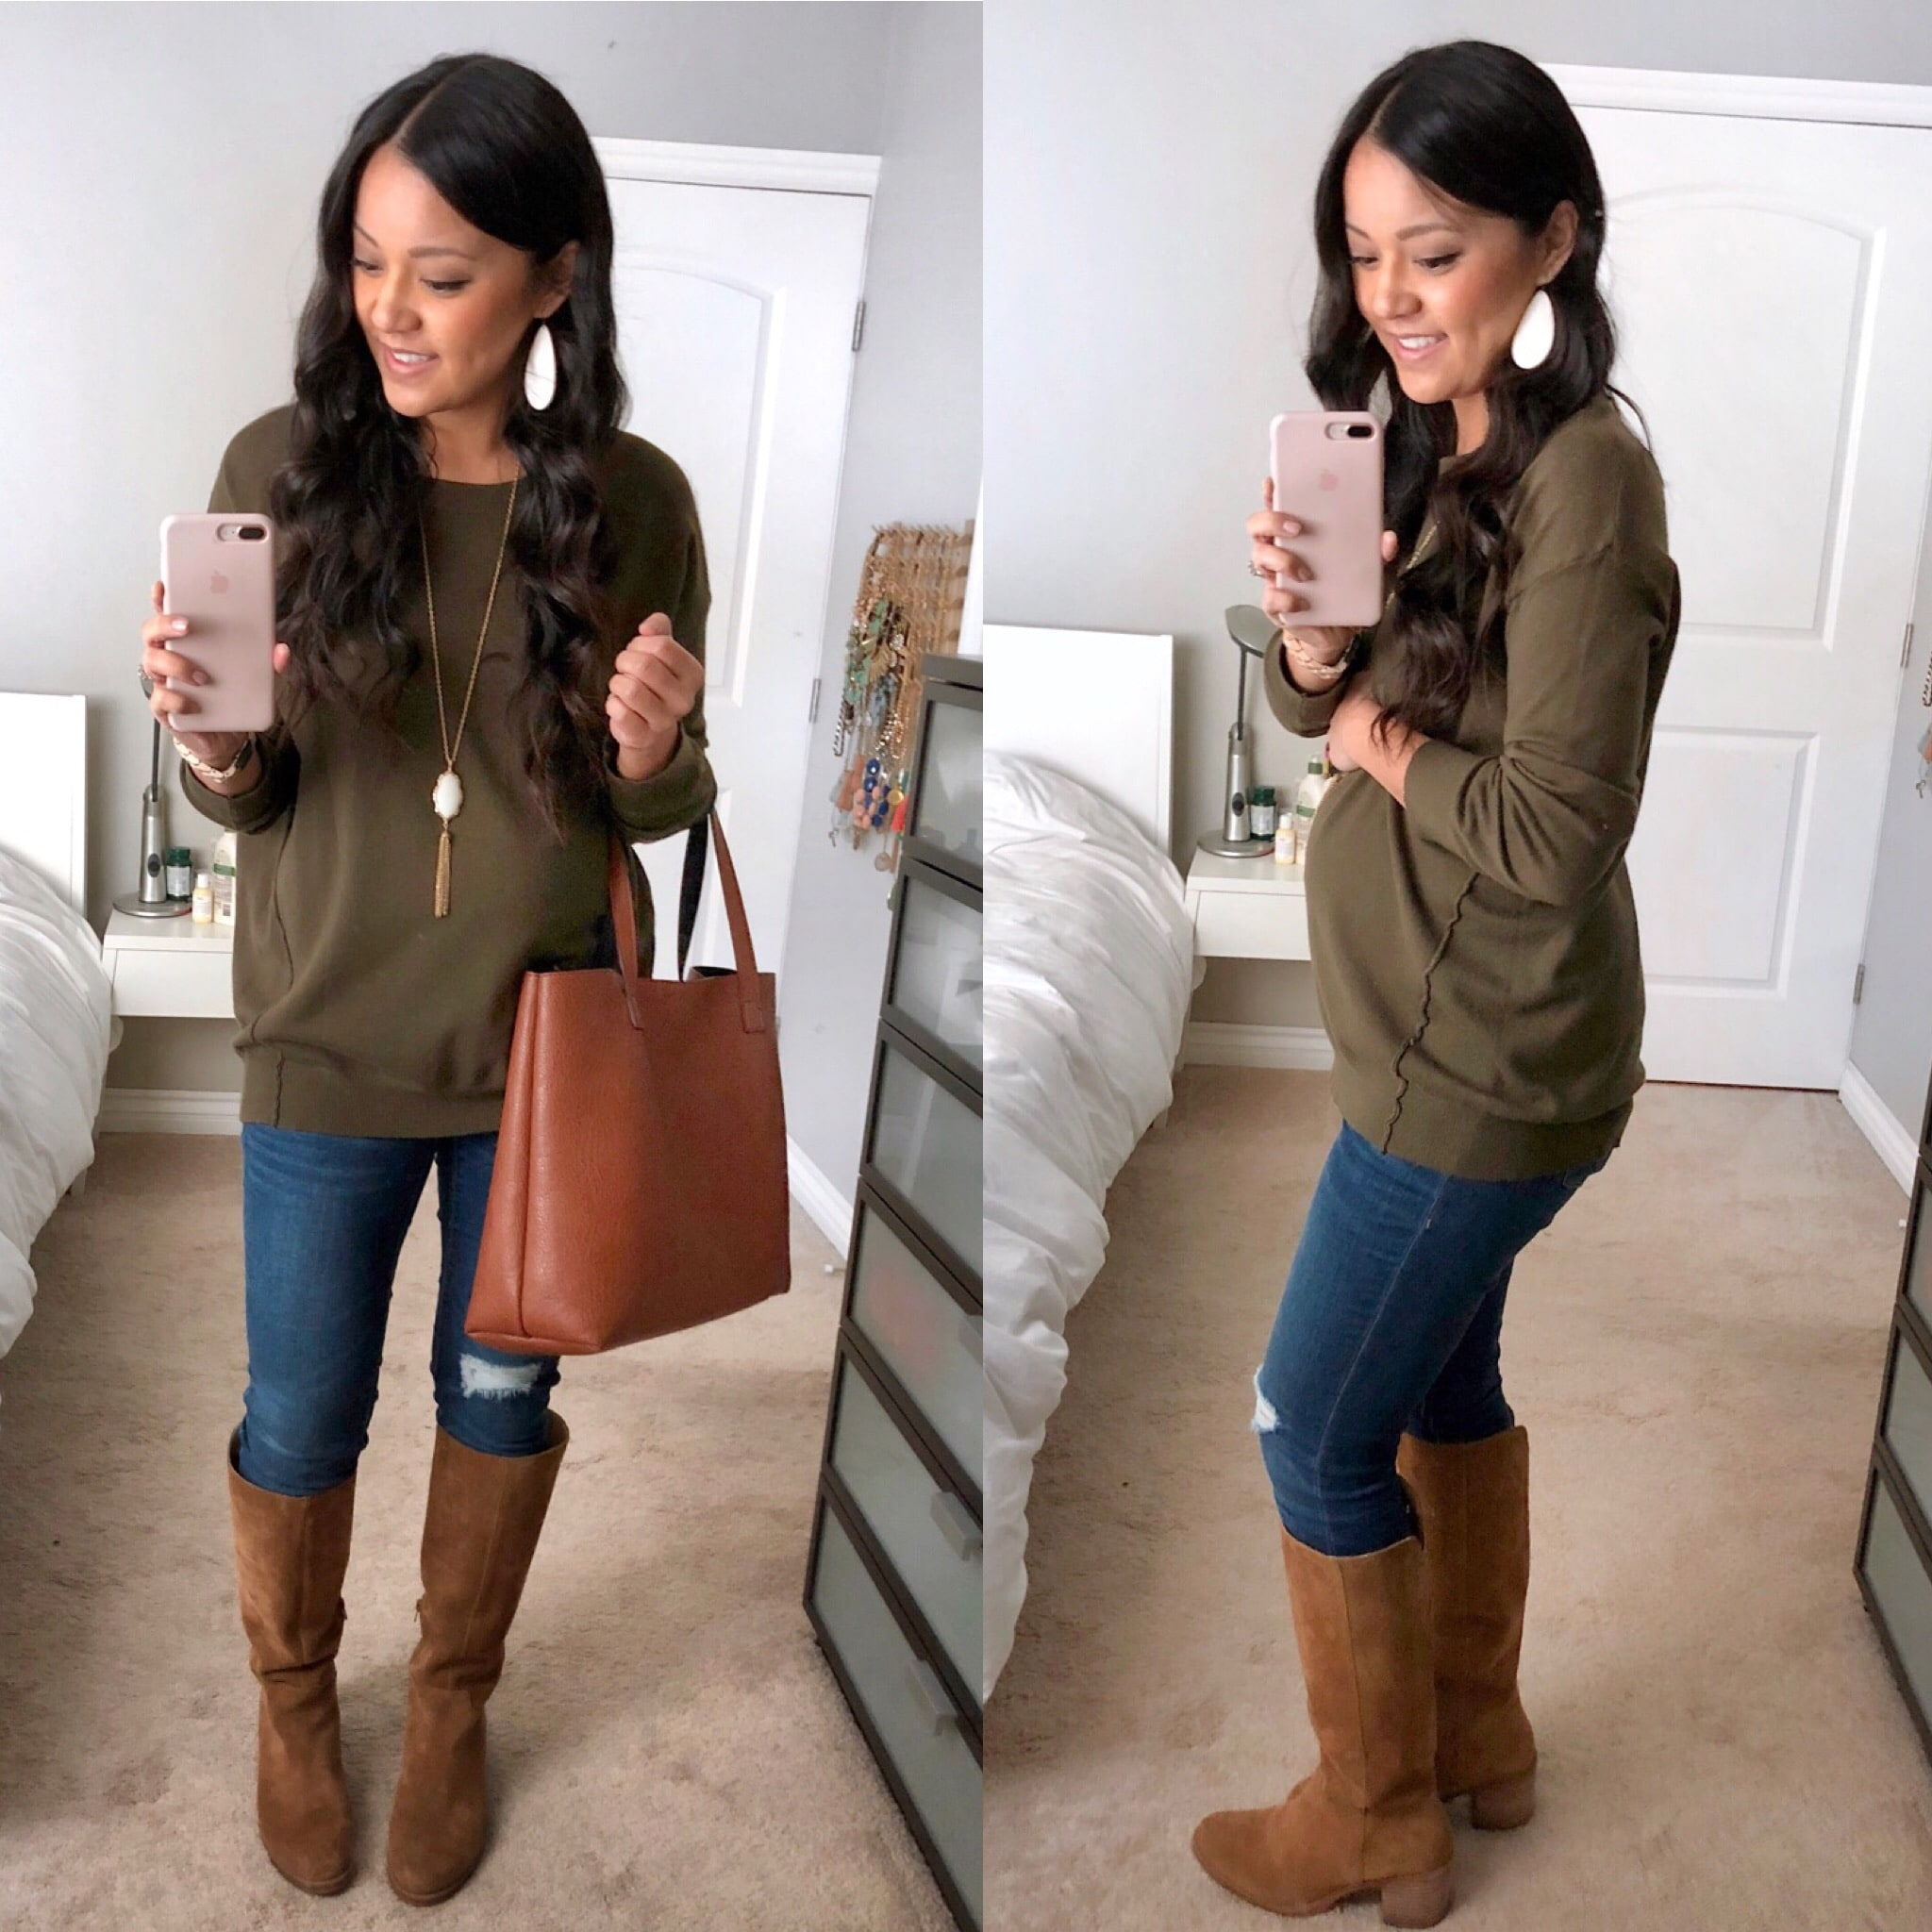 olive sweater + jeans + tan suede boots + white accessories